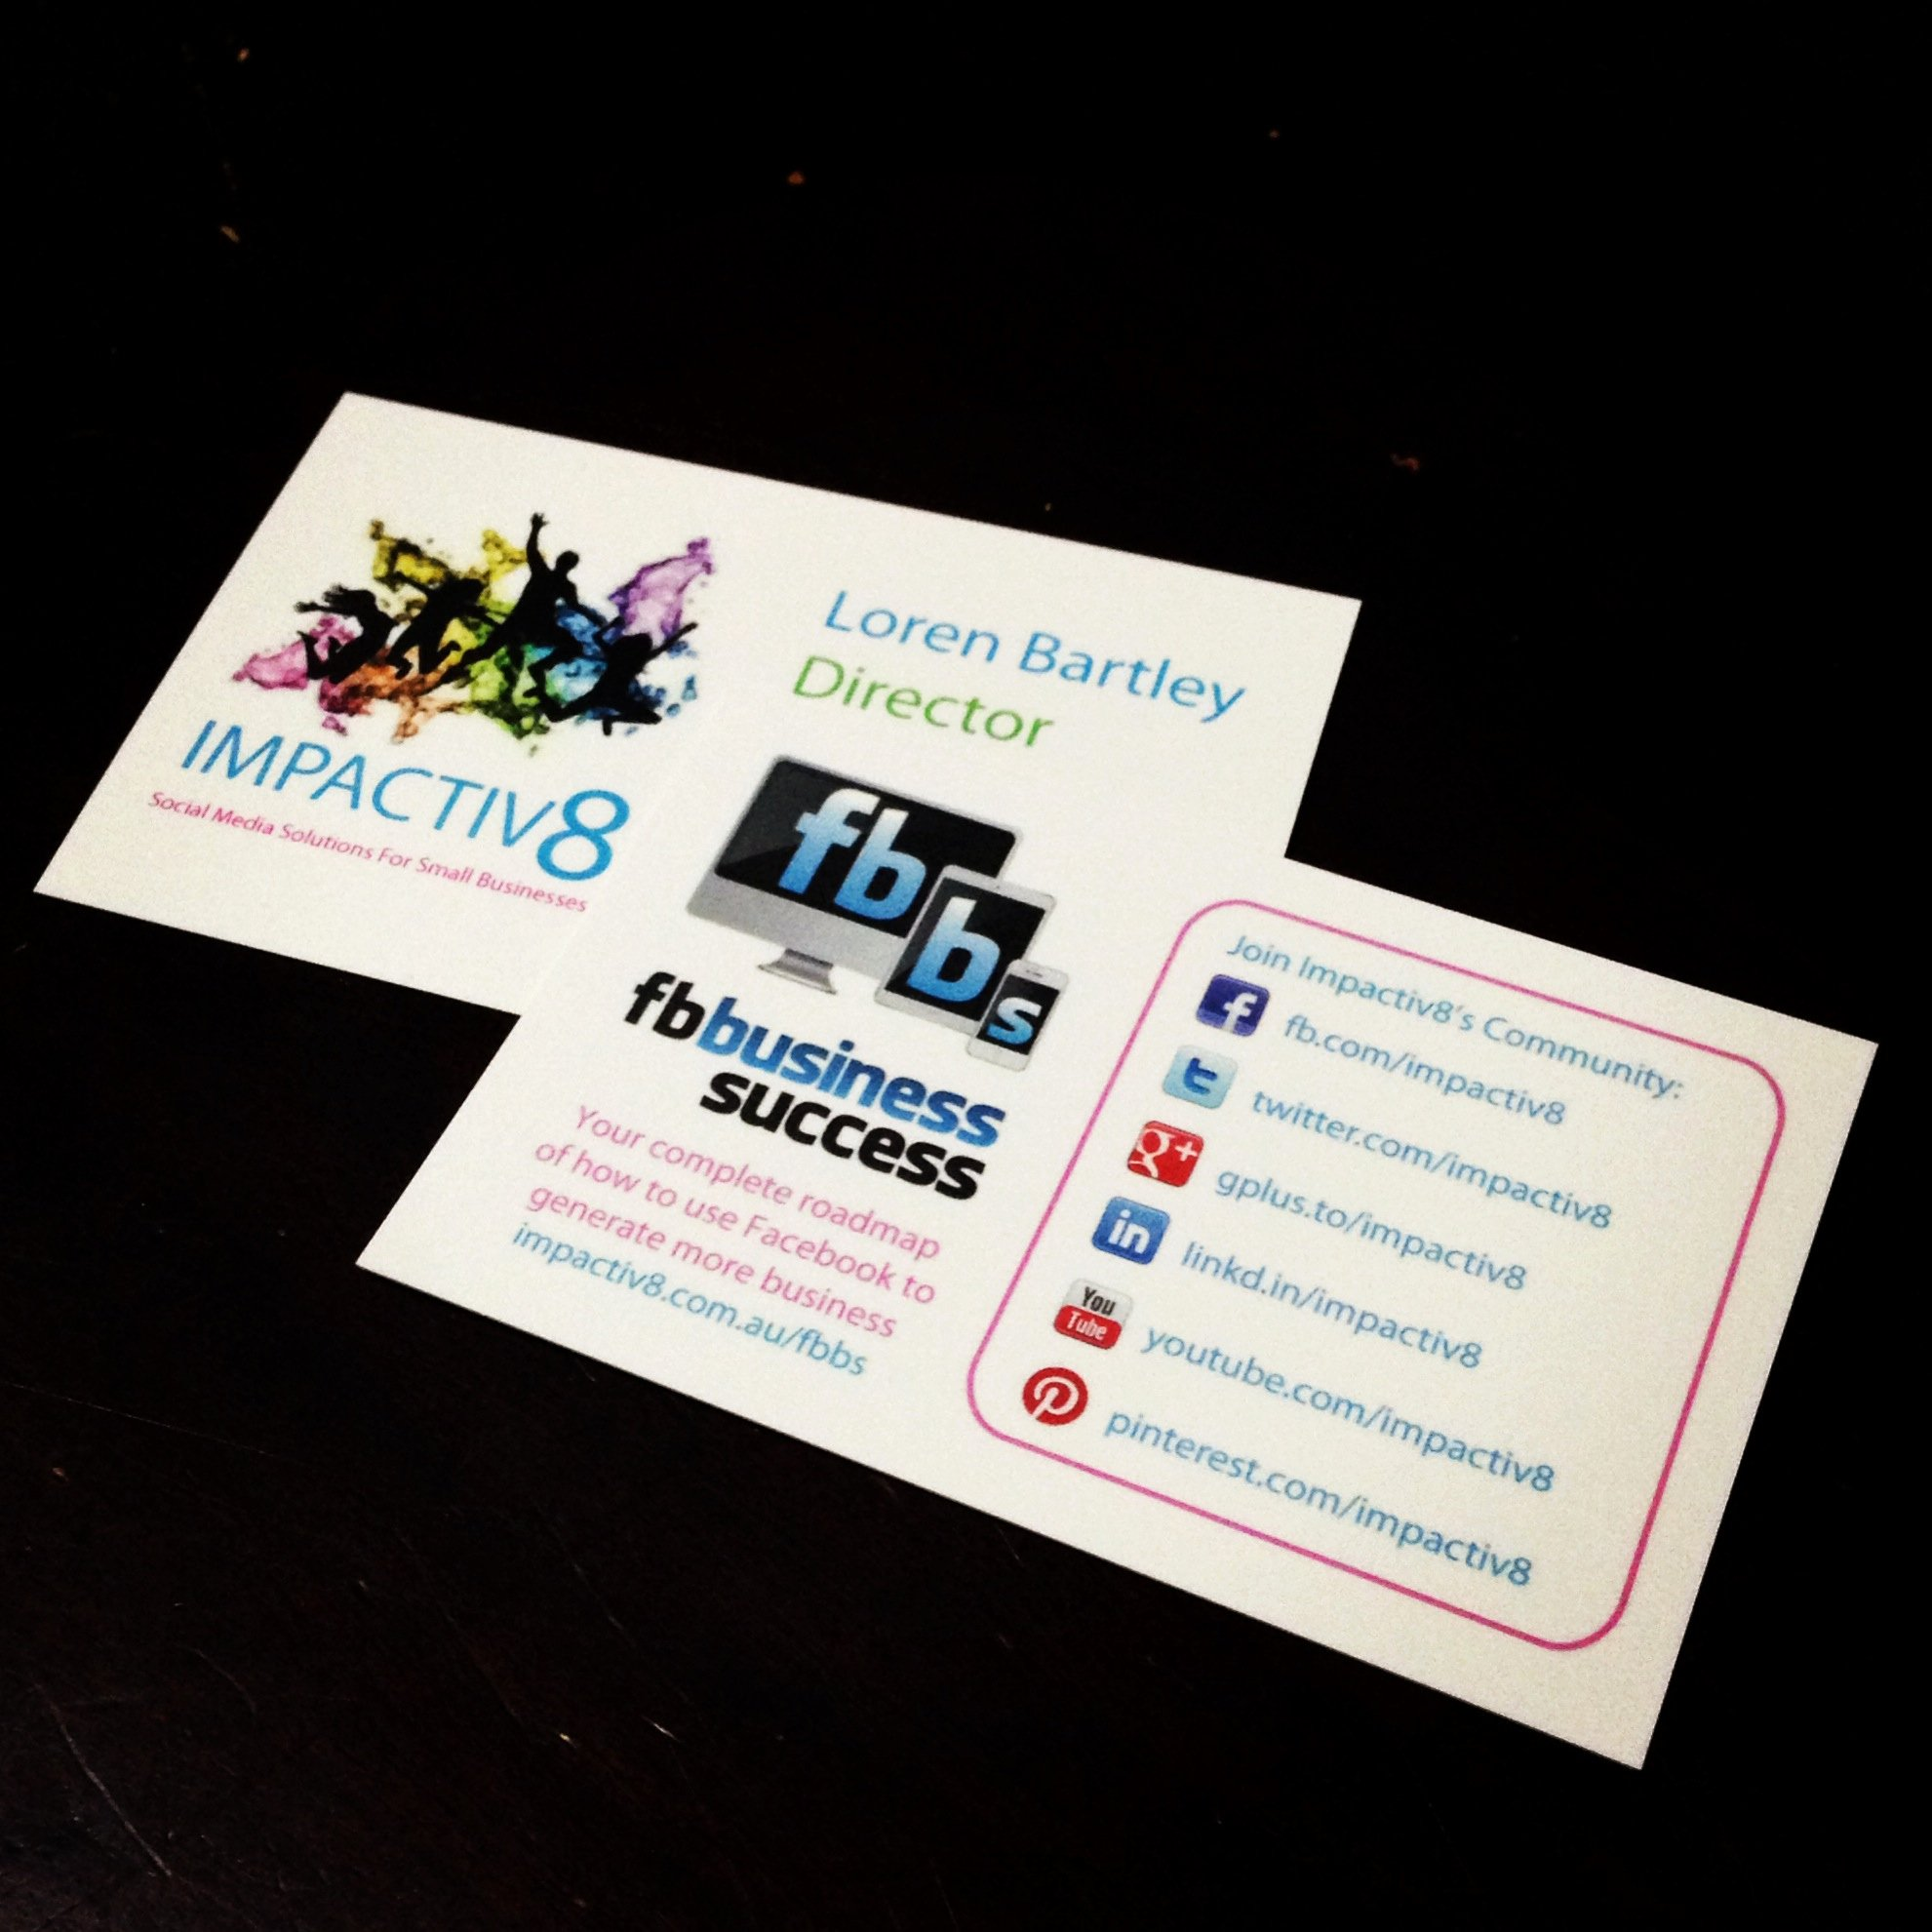 Business Cards with social Media Unique Page Promotion Ideas Examples What Other Businesses are Doing